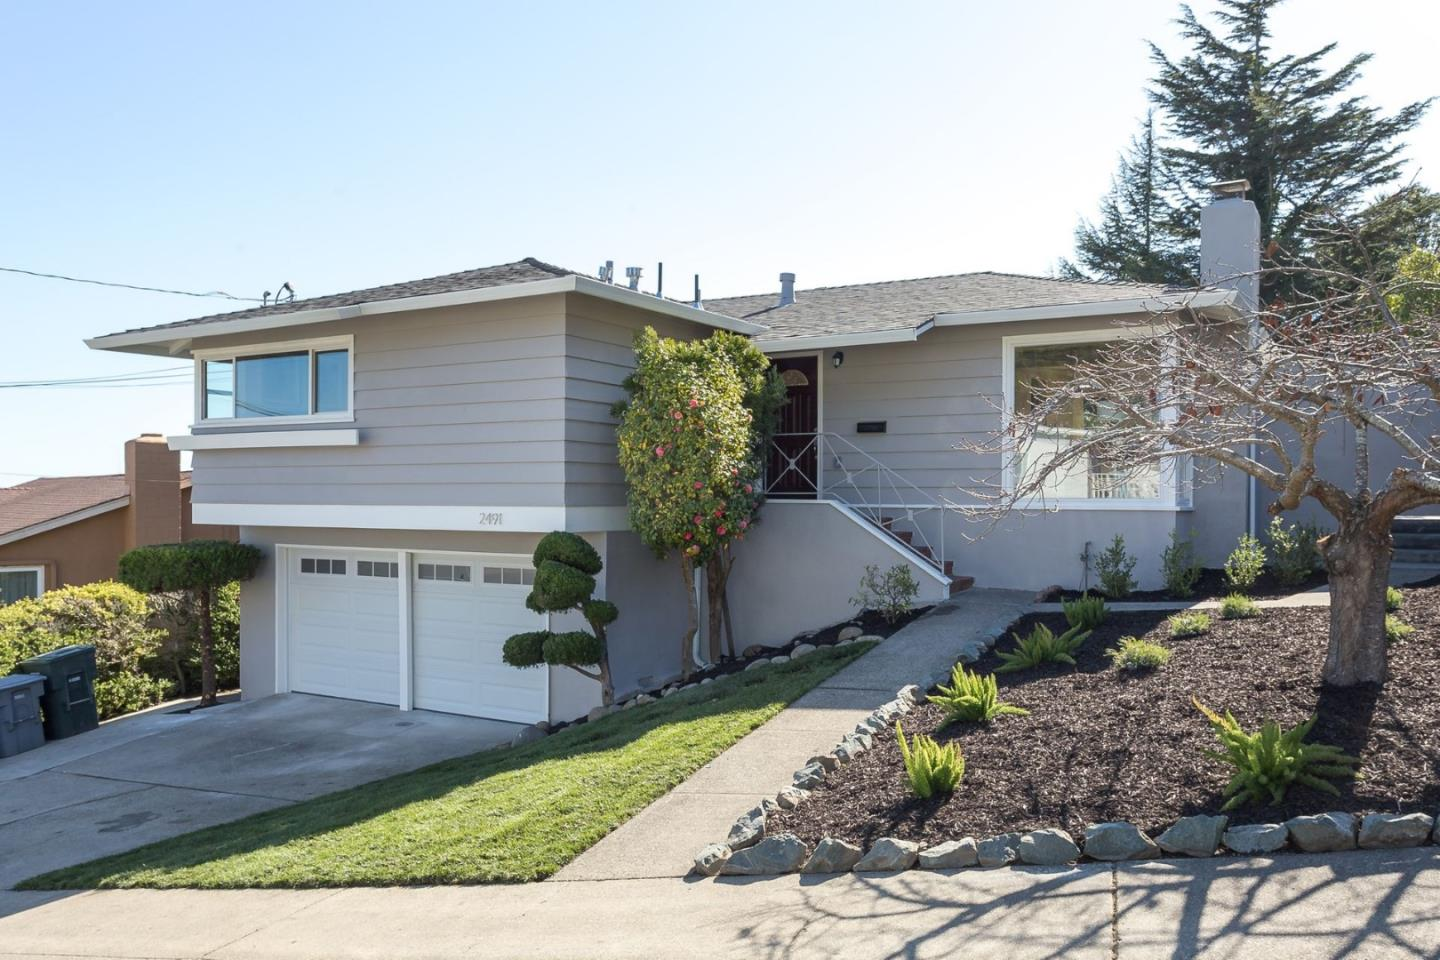 Single Family Home for Sale at 2491 Rosewood Drive 2491 Rosewood Drive San Bruno, California 94066 United States